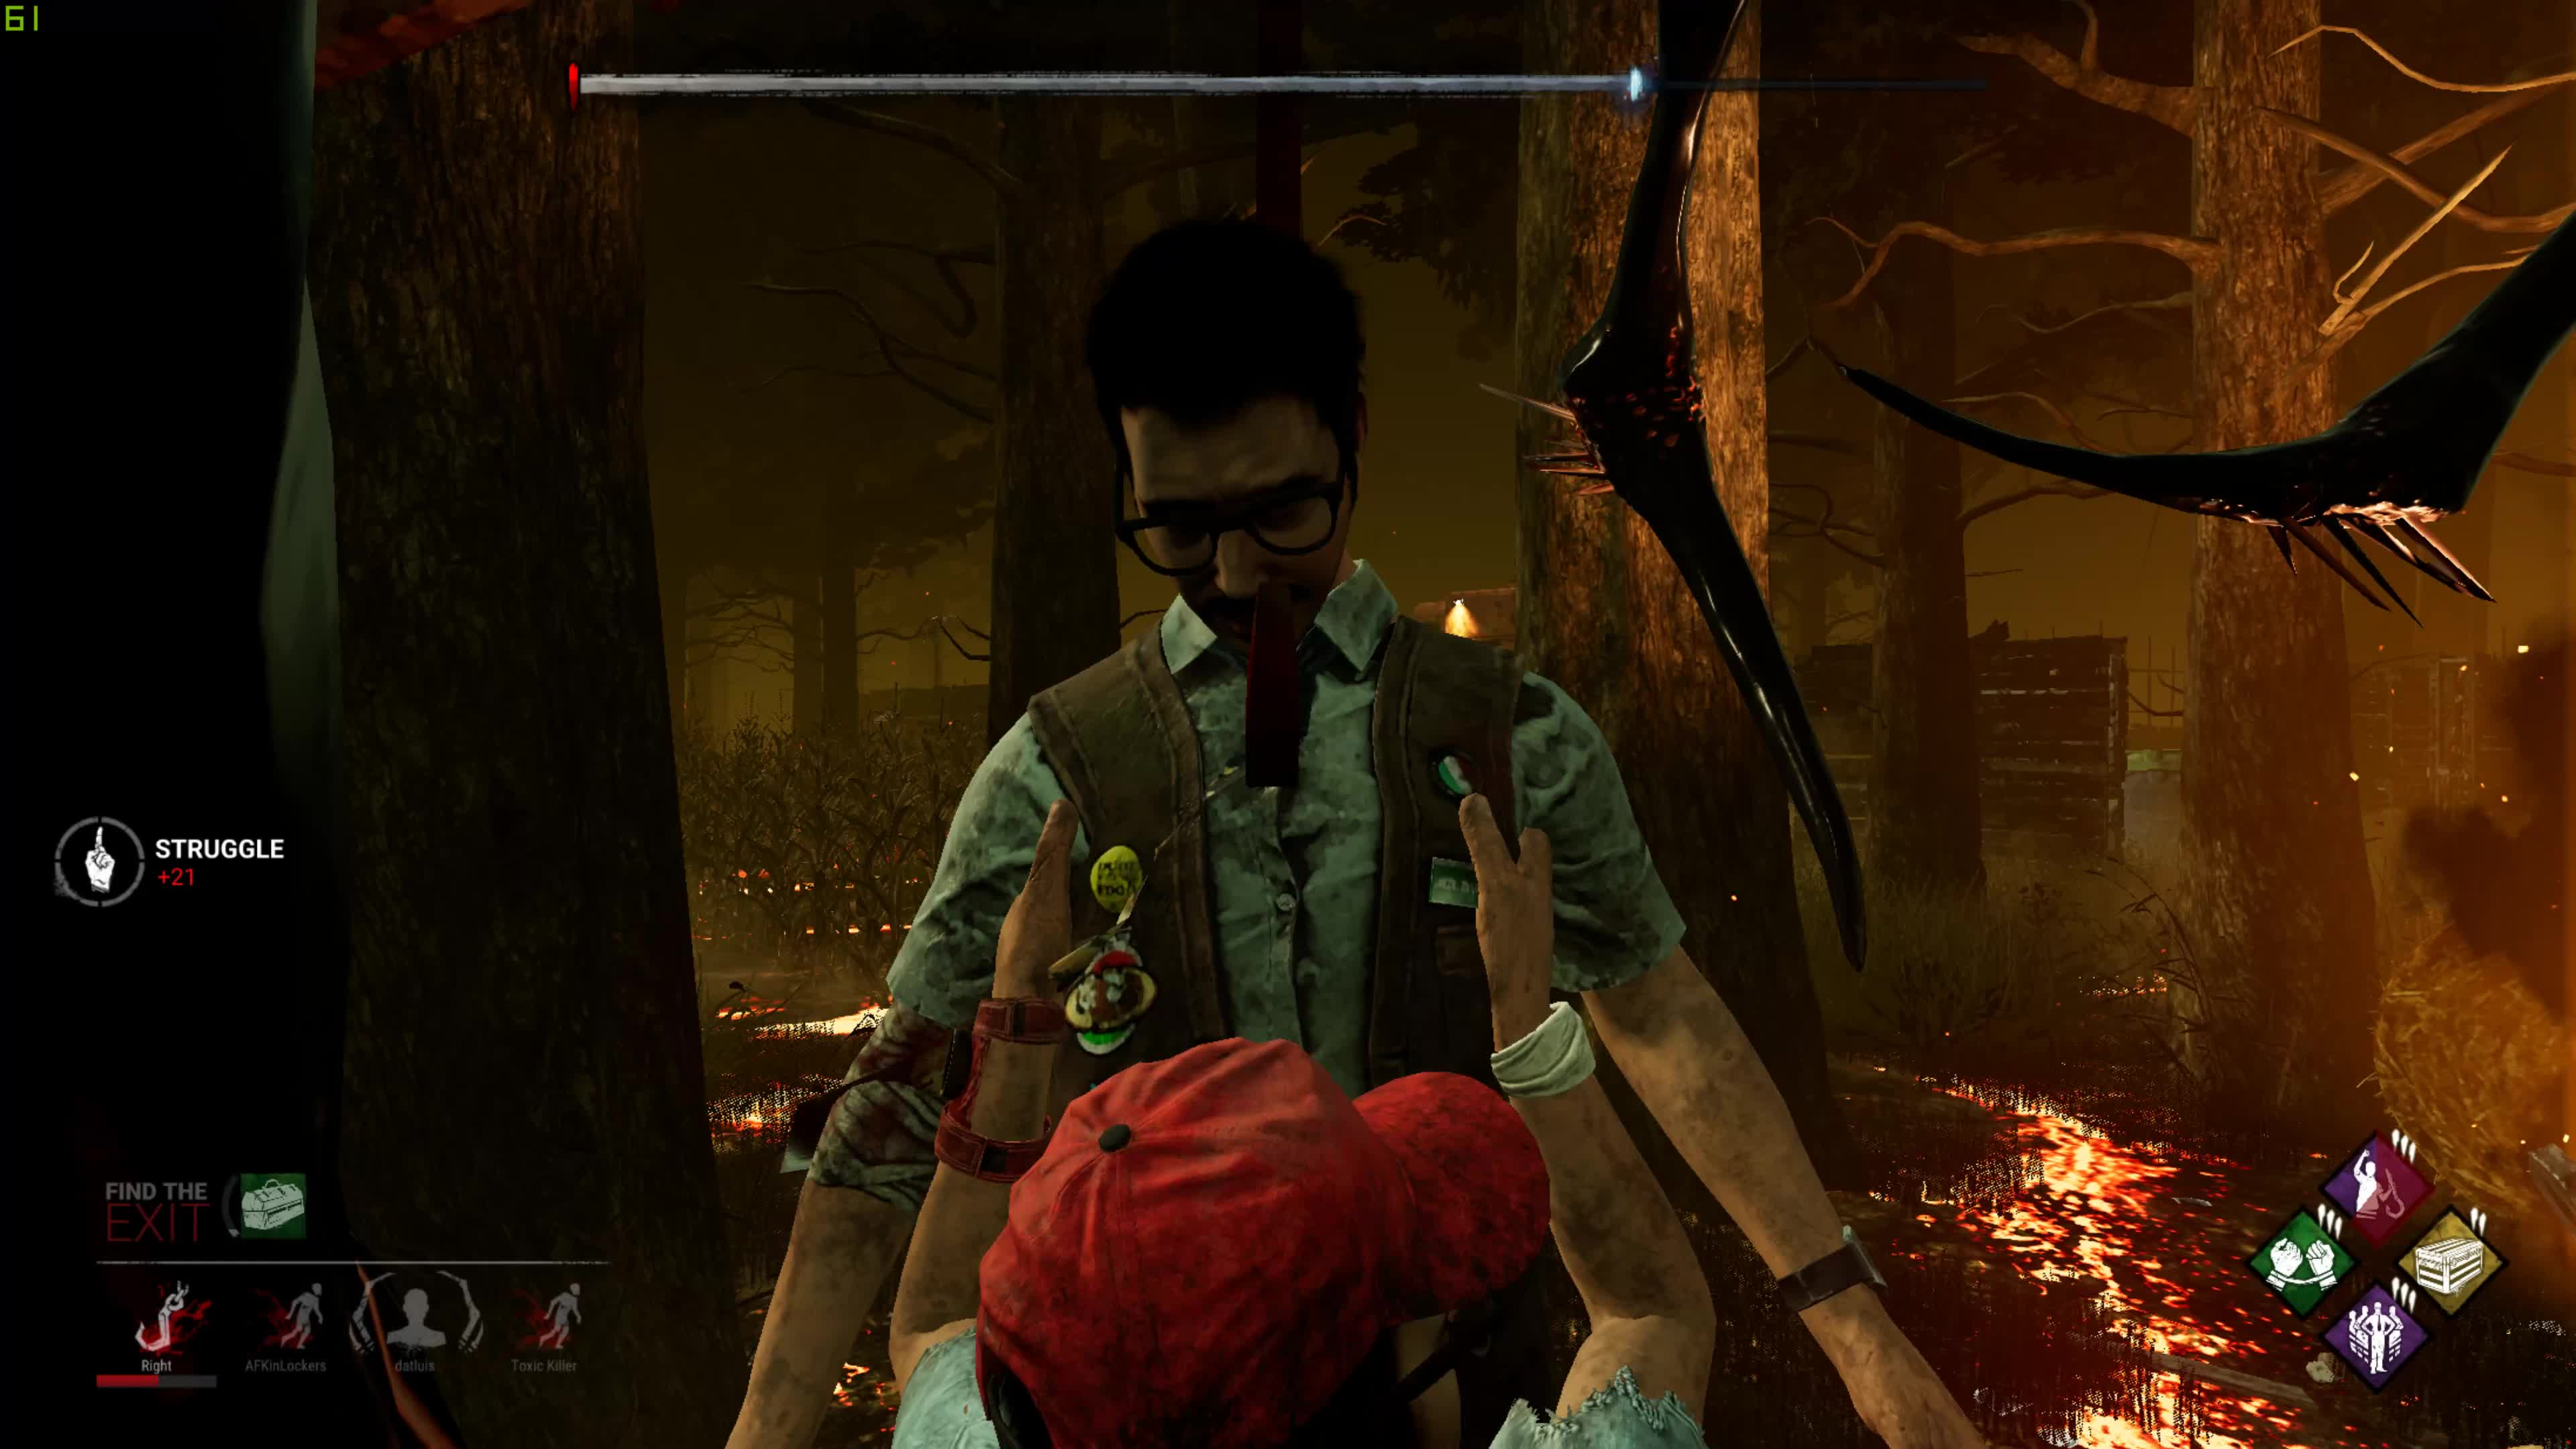 Dead by Daylight - The power of the rando dwight squad GIFs